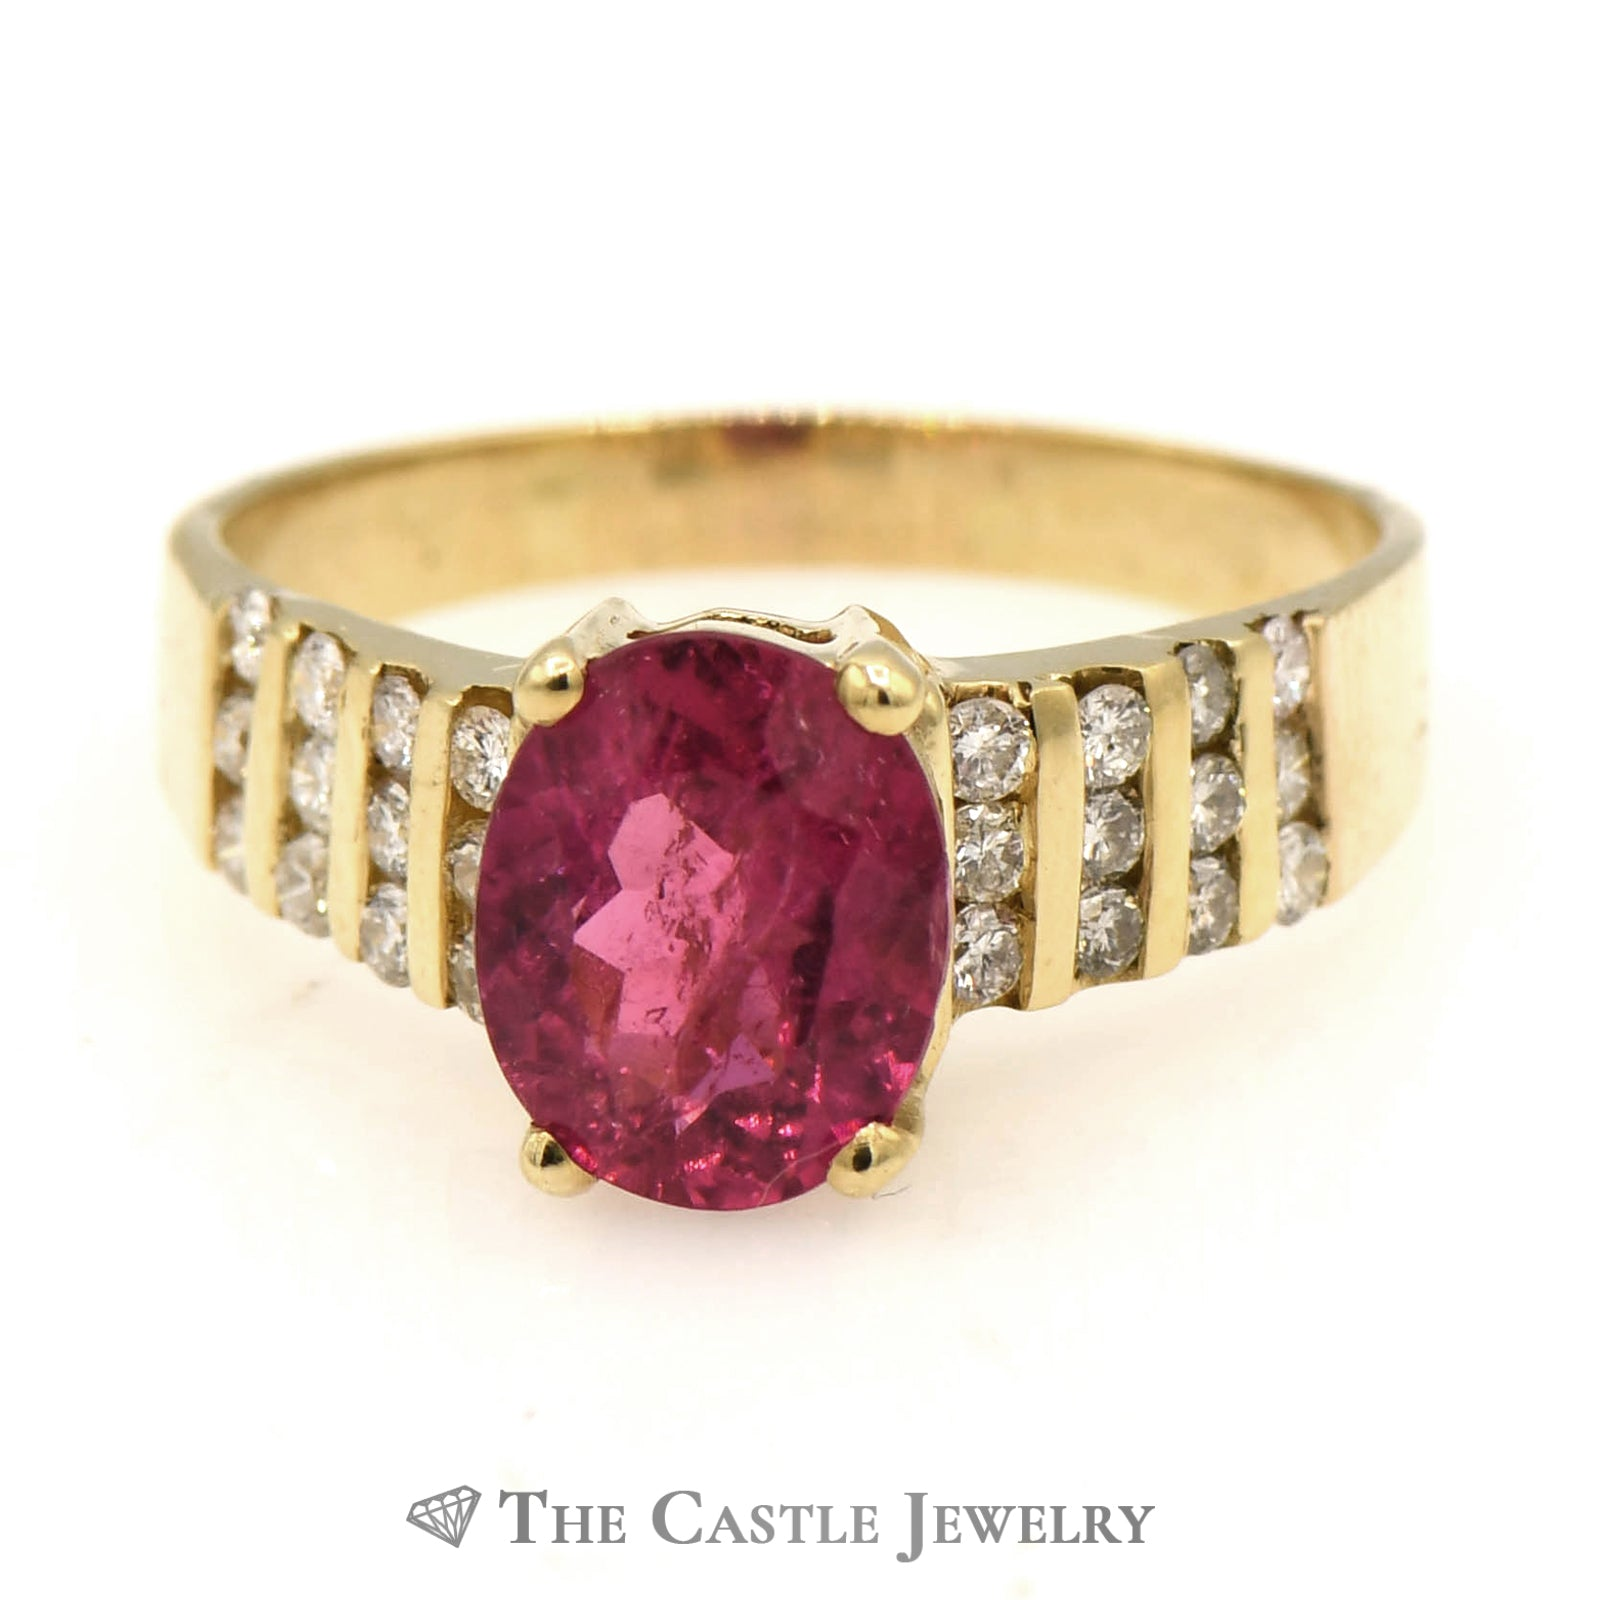 Oval Pink Tourmaline Ring with 8 Rows of Diamonds